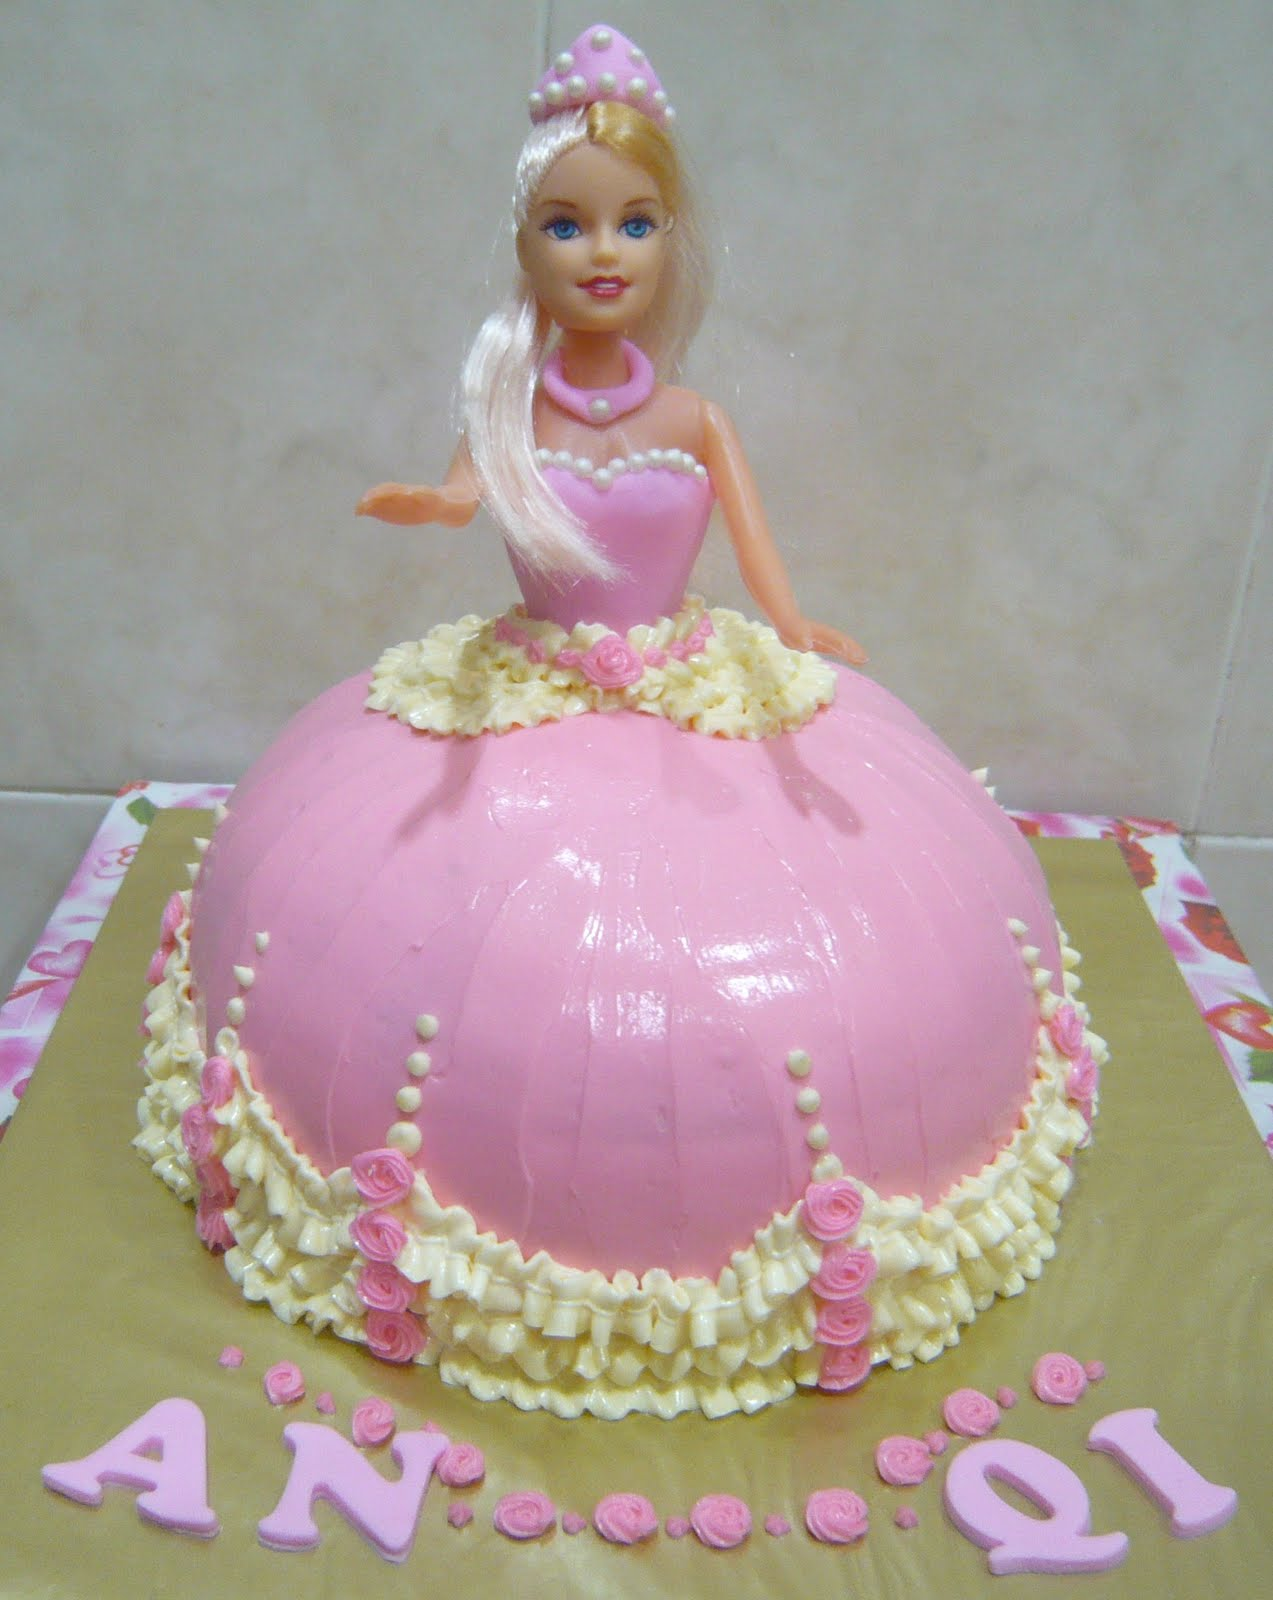 Princess Doll Cake Pictures : Jenn Cupcakes & Muffins: Princess Doll Cake for An Qi